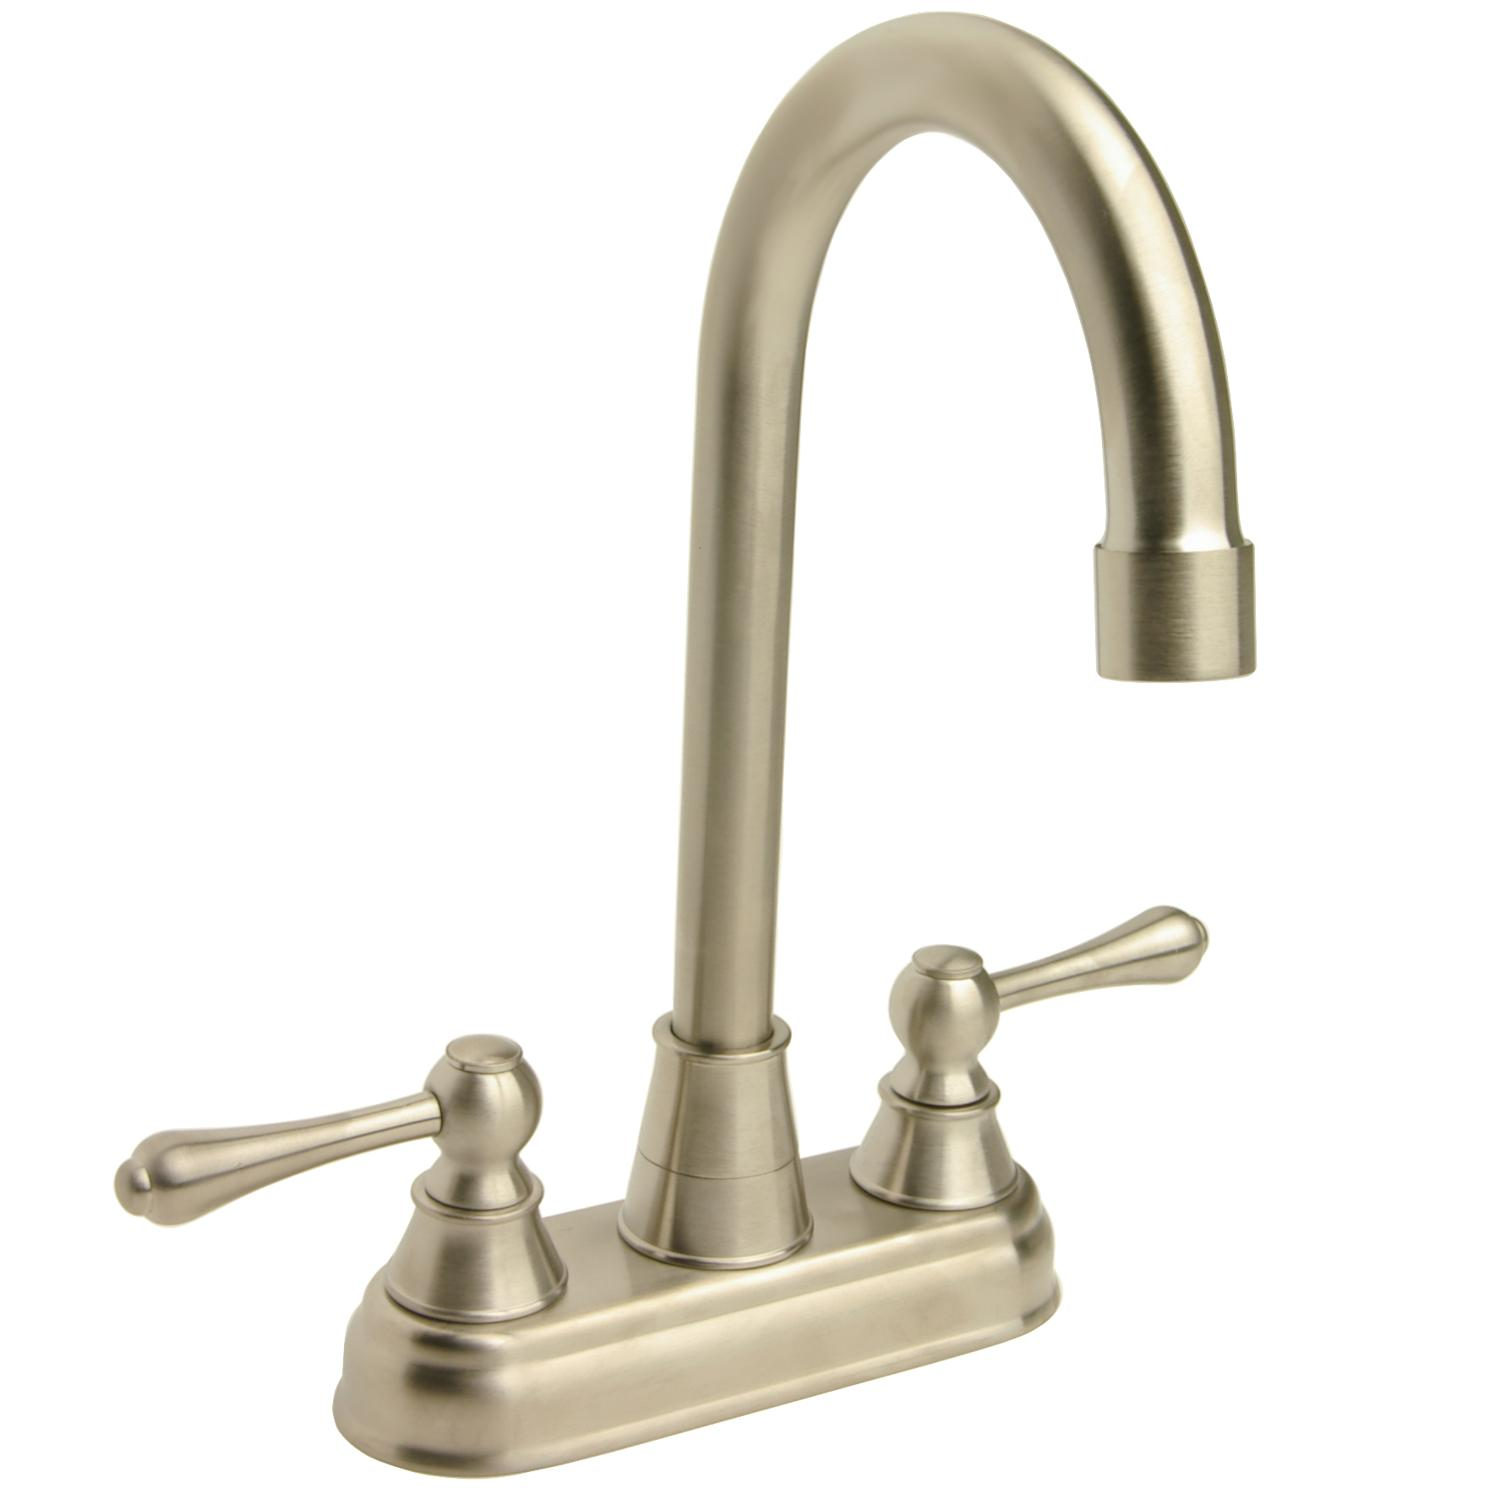 Brushed Nickel Kitchen Faucet : High-arc Brushed Nickel Bar Faucet - 13125437 - Overstock.com Shopping ...